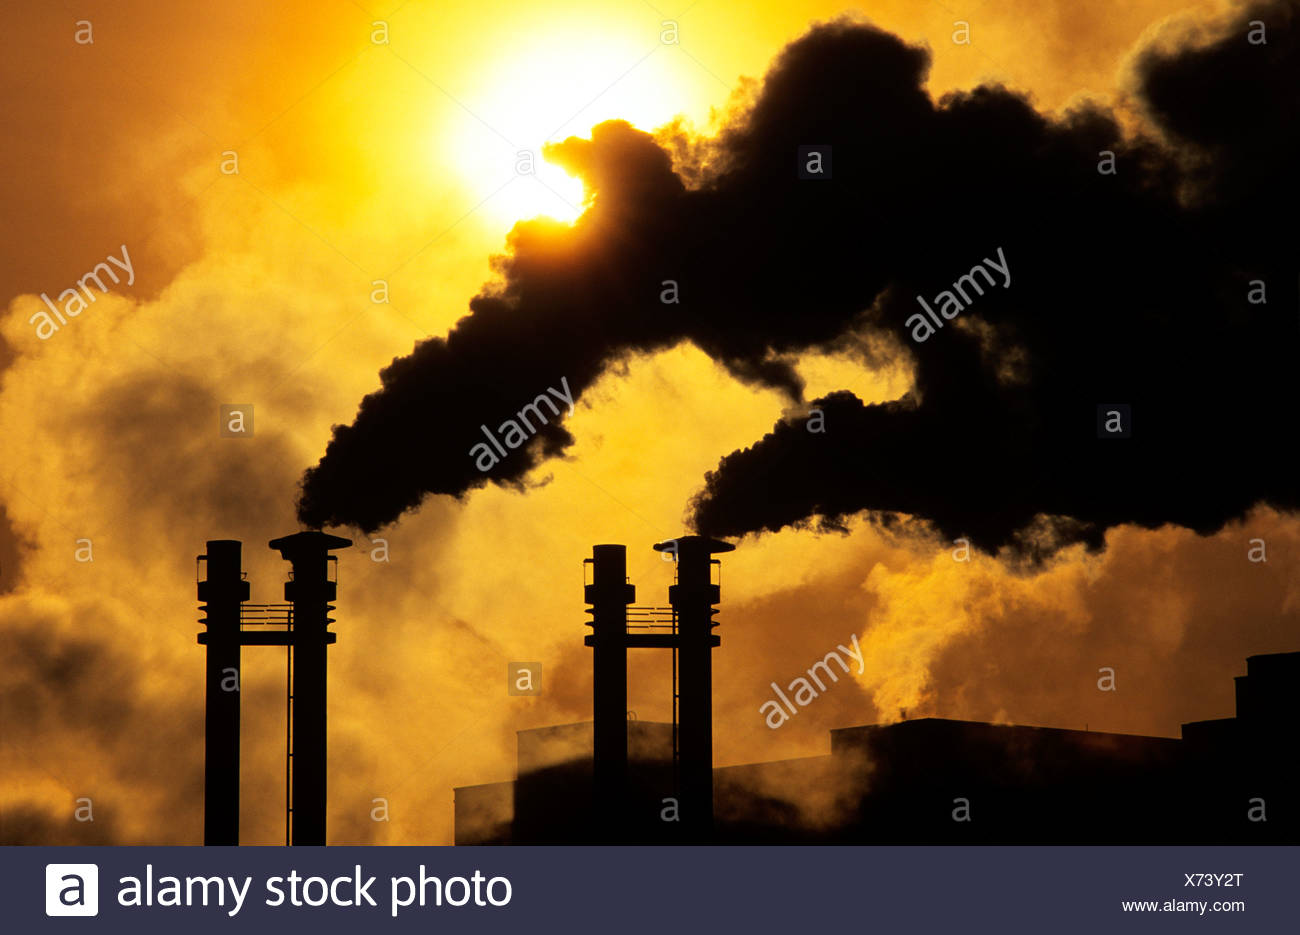 Air pollution, Canada. - Stock Image